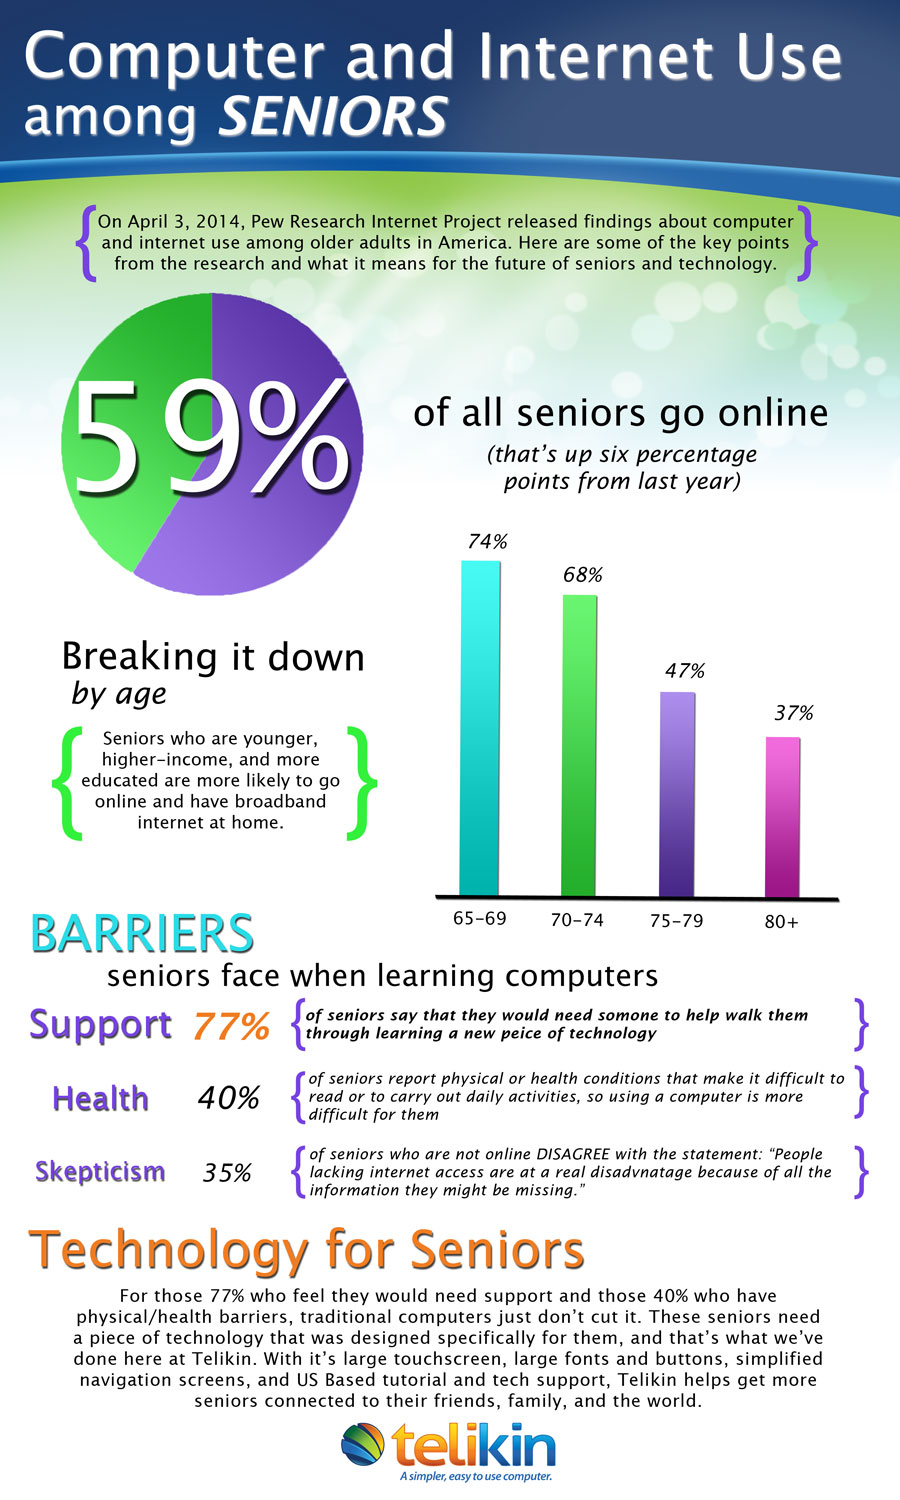 Senior-Computer-and-Internet-Use web